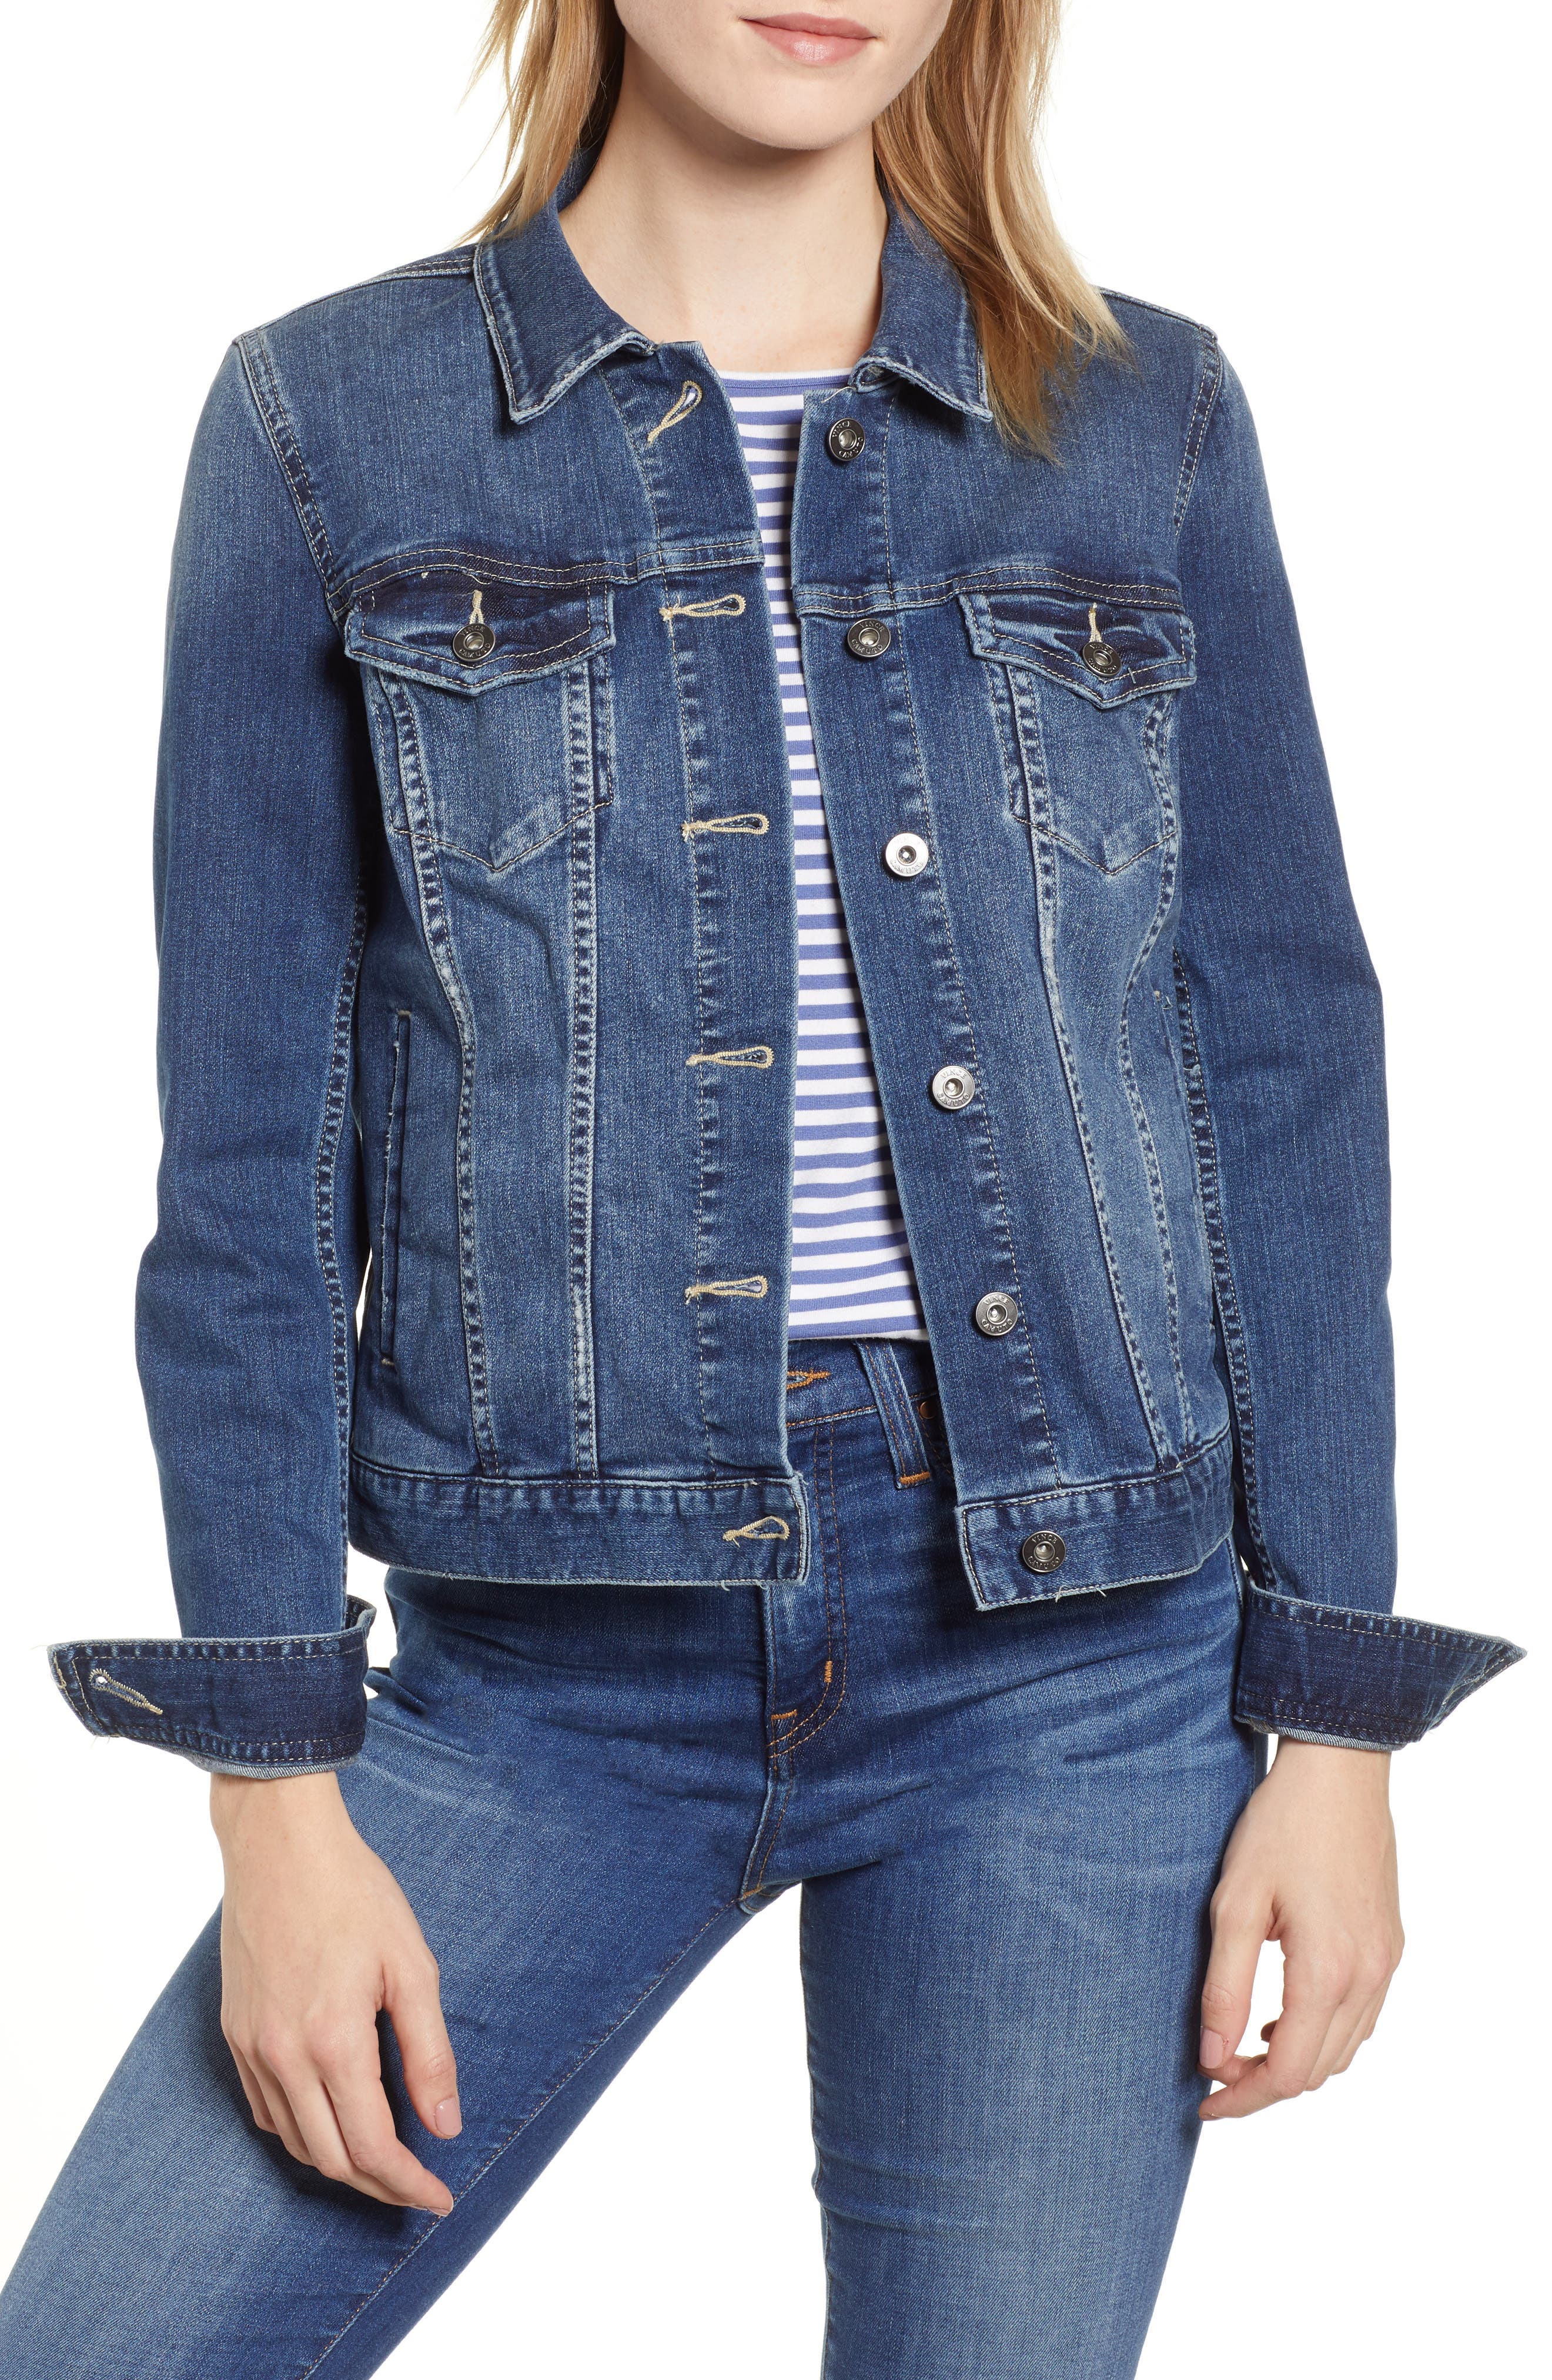 VINCE CAMUTO, Two by Vince Camuto Jean Jacket, Alternate thumbnail 2, color, AUTHENTIC